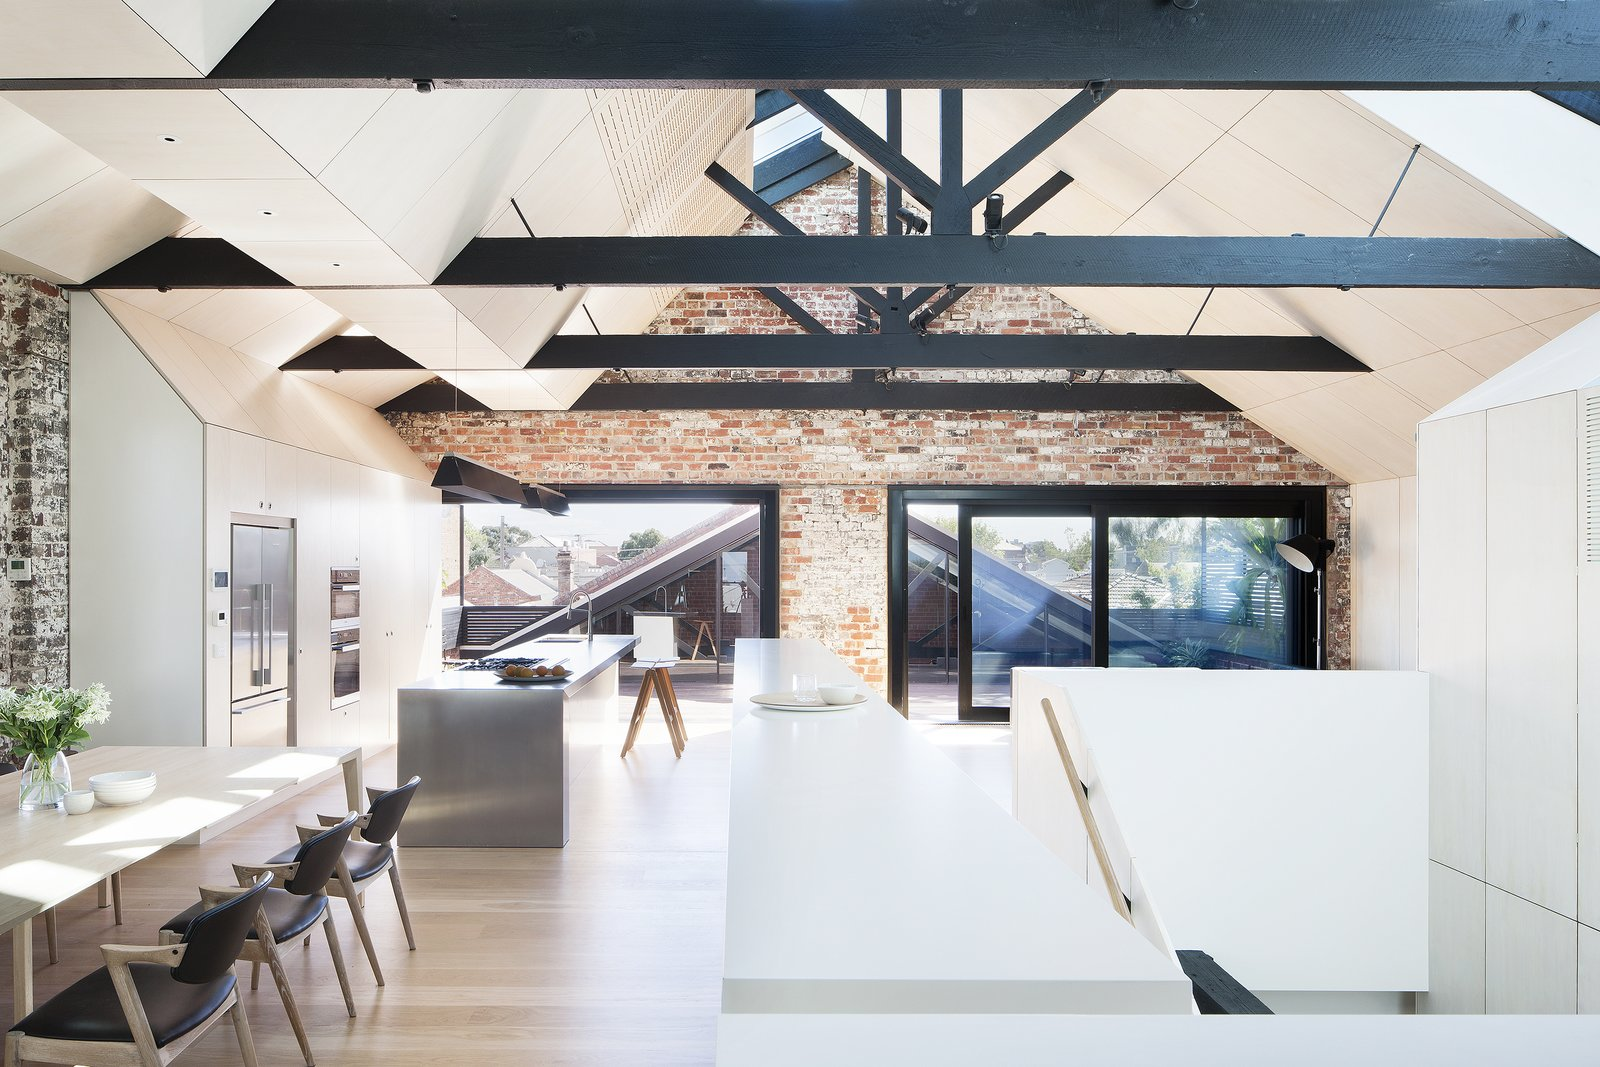 Interior Design: 6 Spaces with Beautiful Exposed Beams// Image via: Dwell